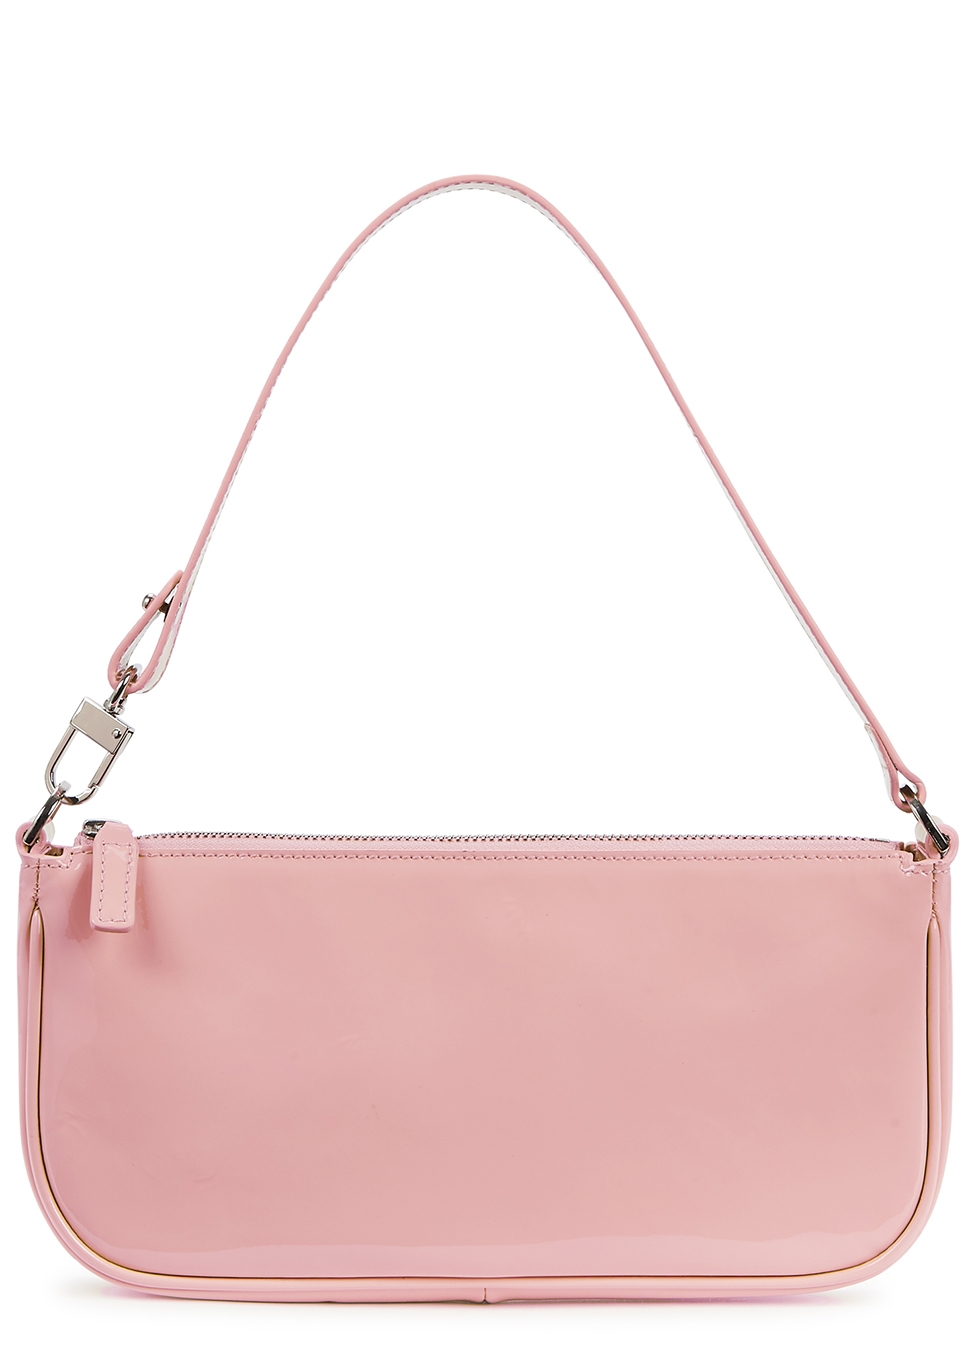 Rachel Pink Patent Leather Shoulder Bag by By Far